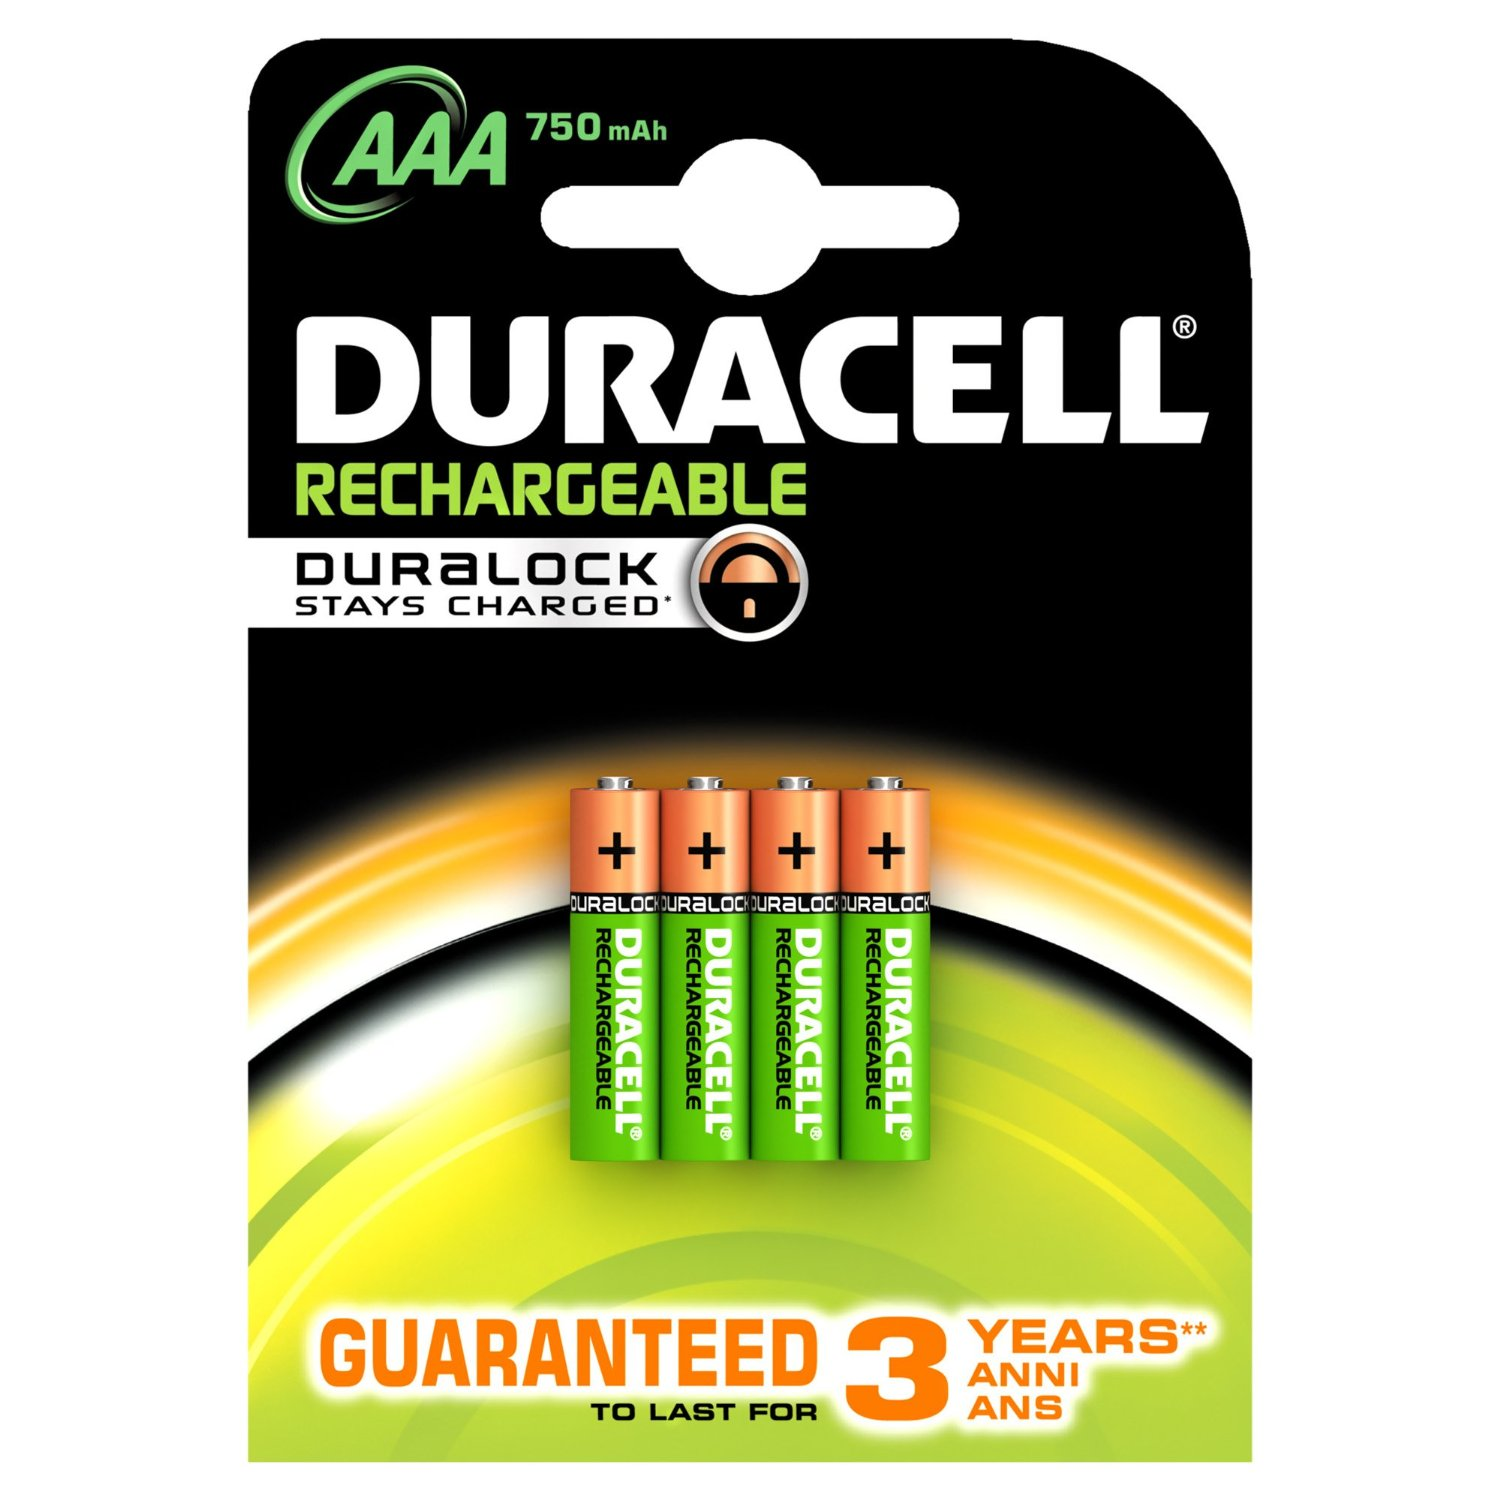 Duracell Rechargeable AAA (HR03  MN2400) NiMh Batteries (750mAh)  4 Pack